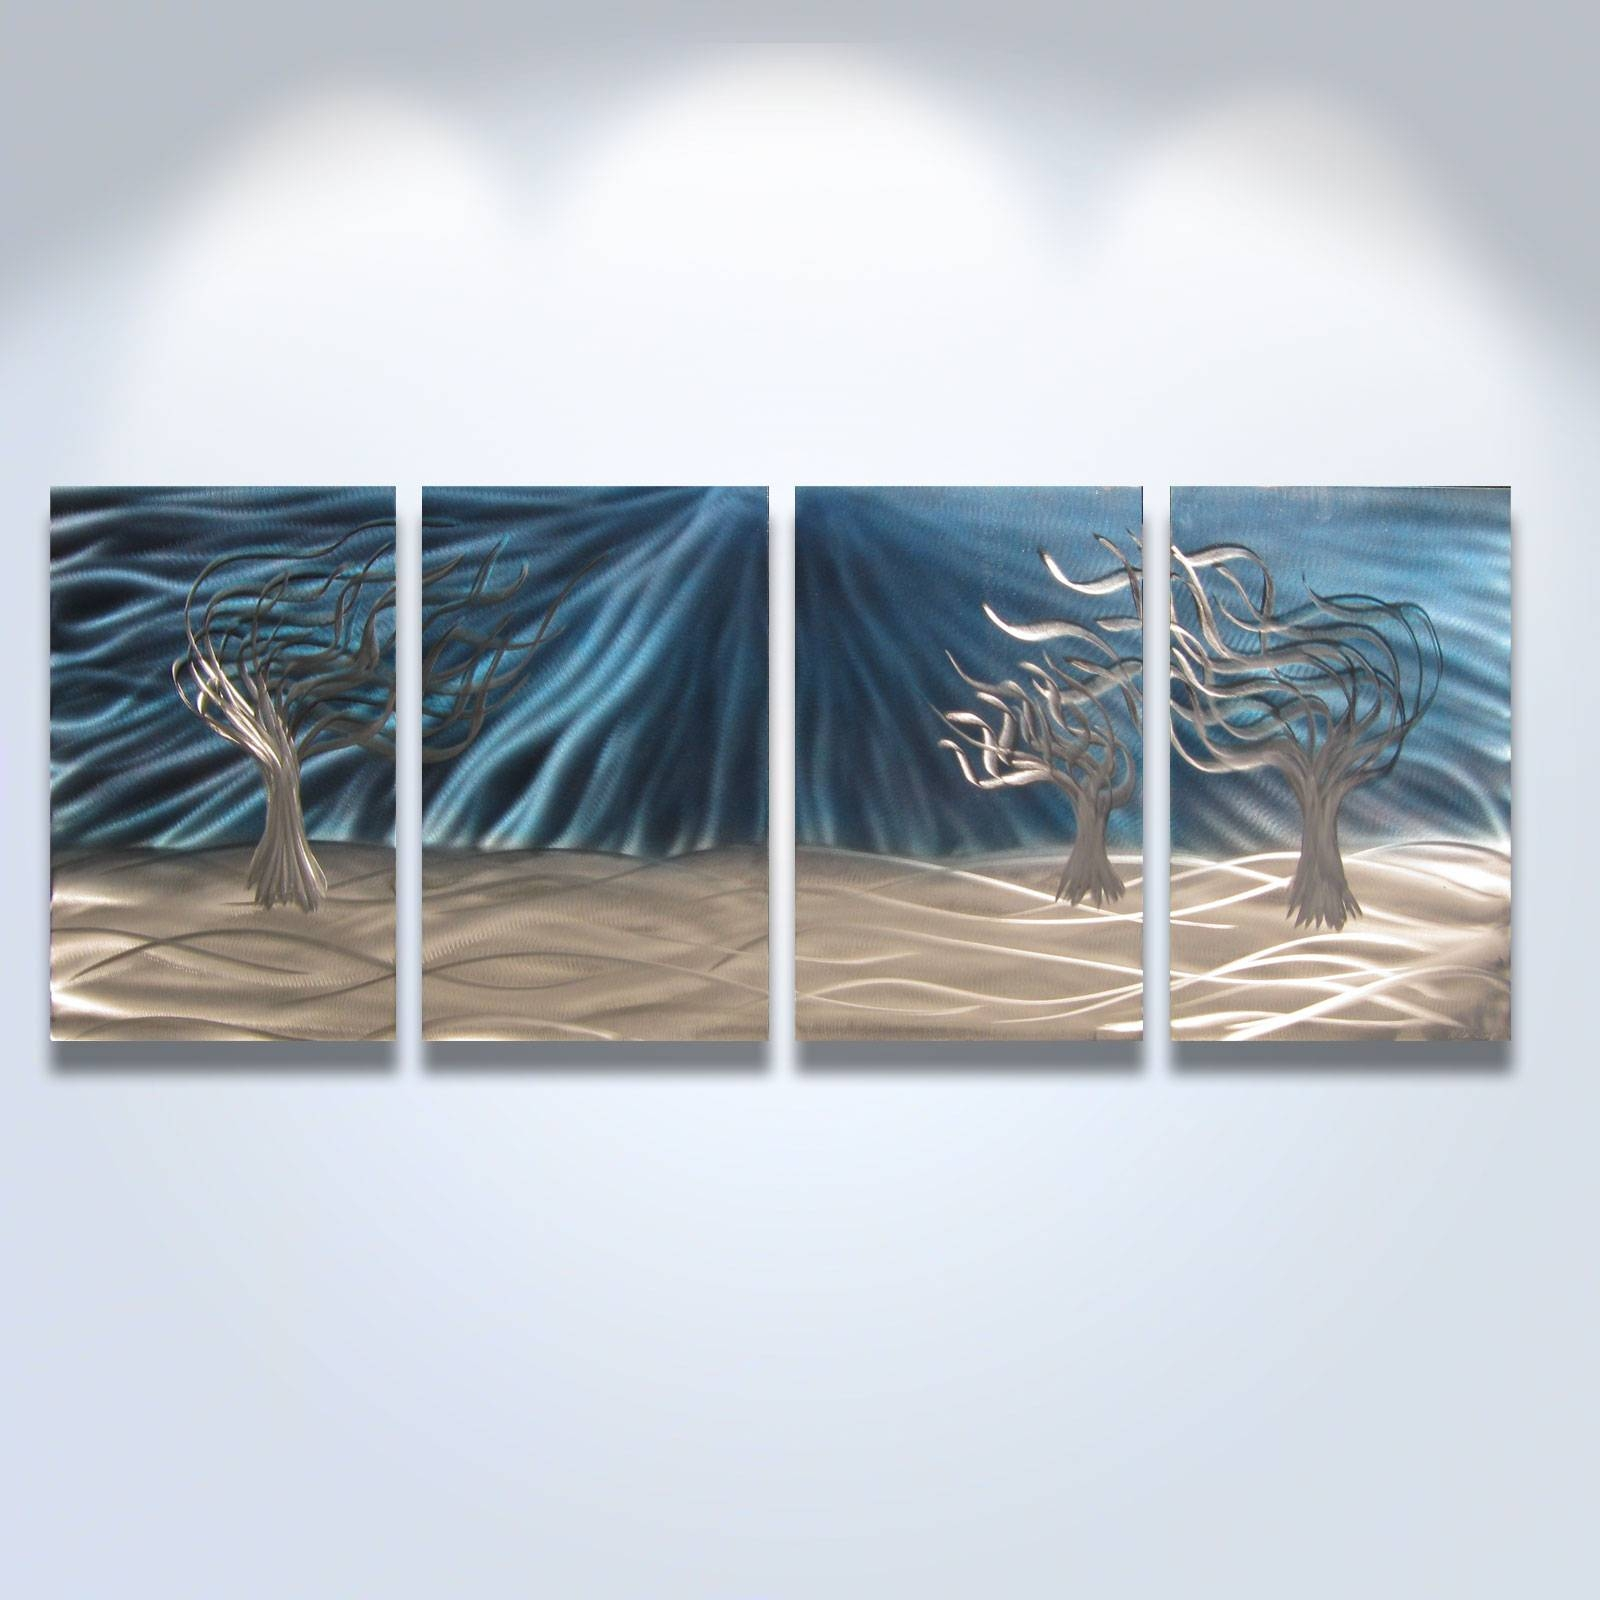 Nice Design Blue Metal Wall Art Homey Ideas Ash Carl Hydrodynamic With Regard To Most Current Ash Carl Metal Art (View 7 of 30)